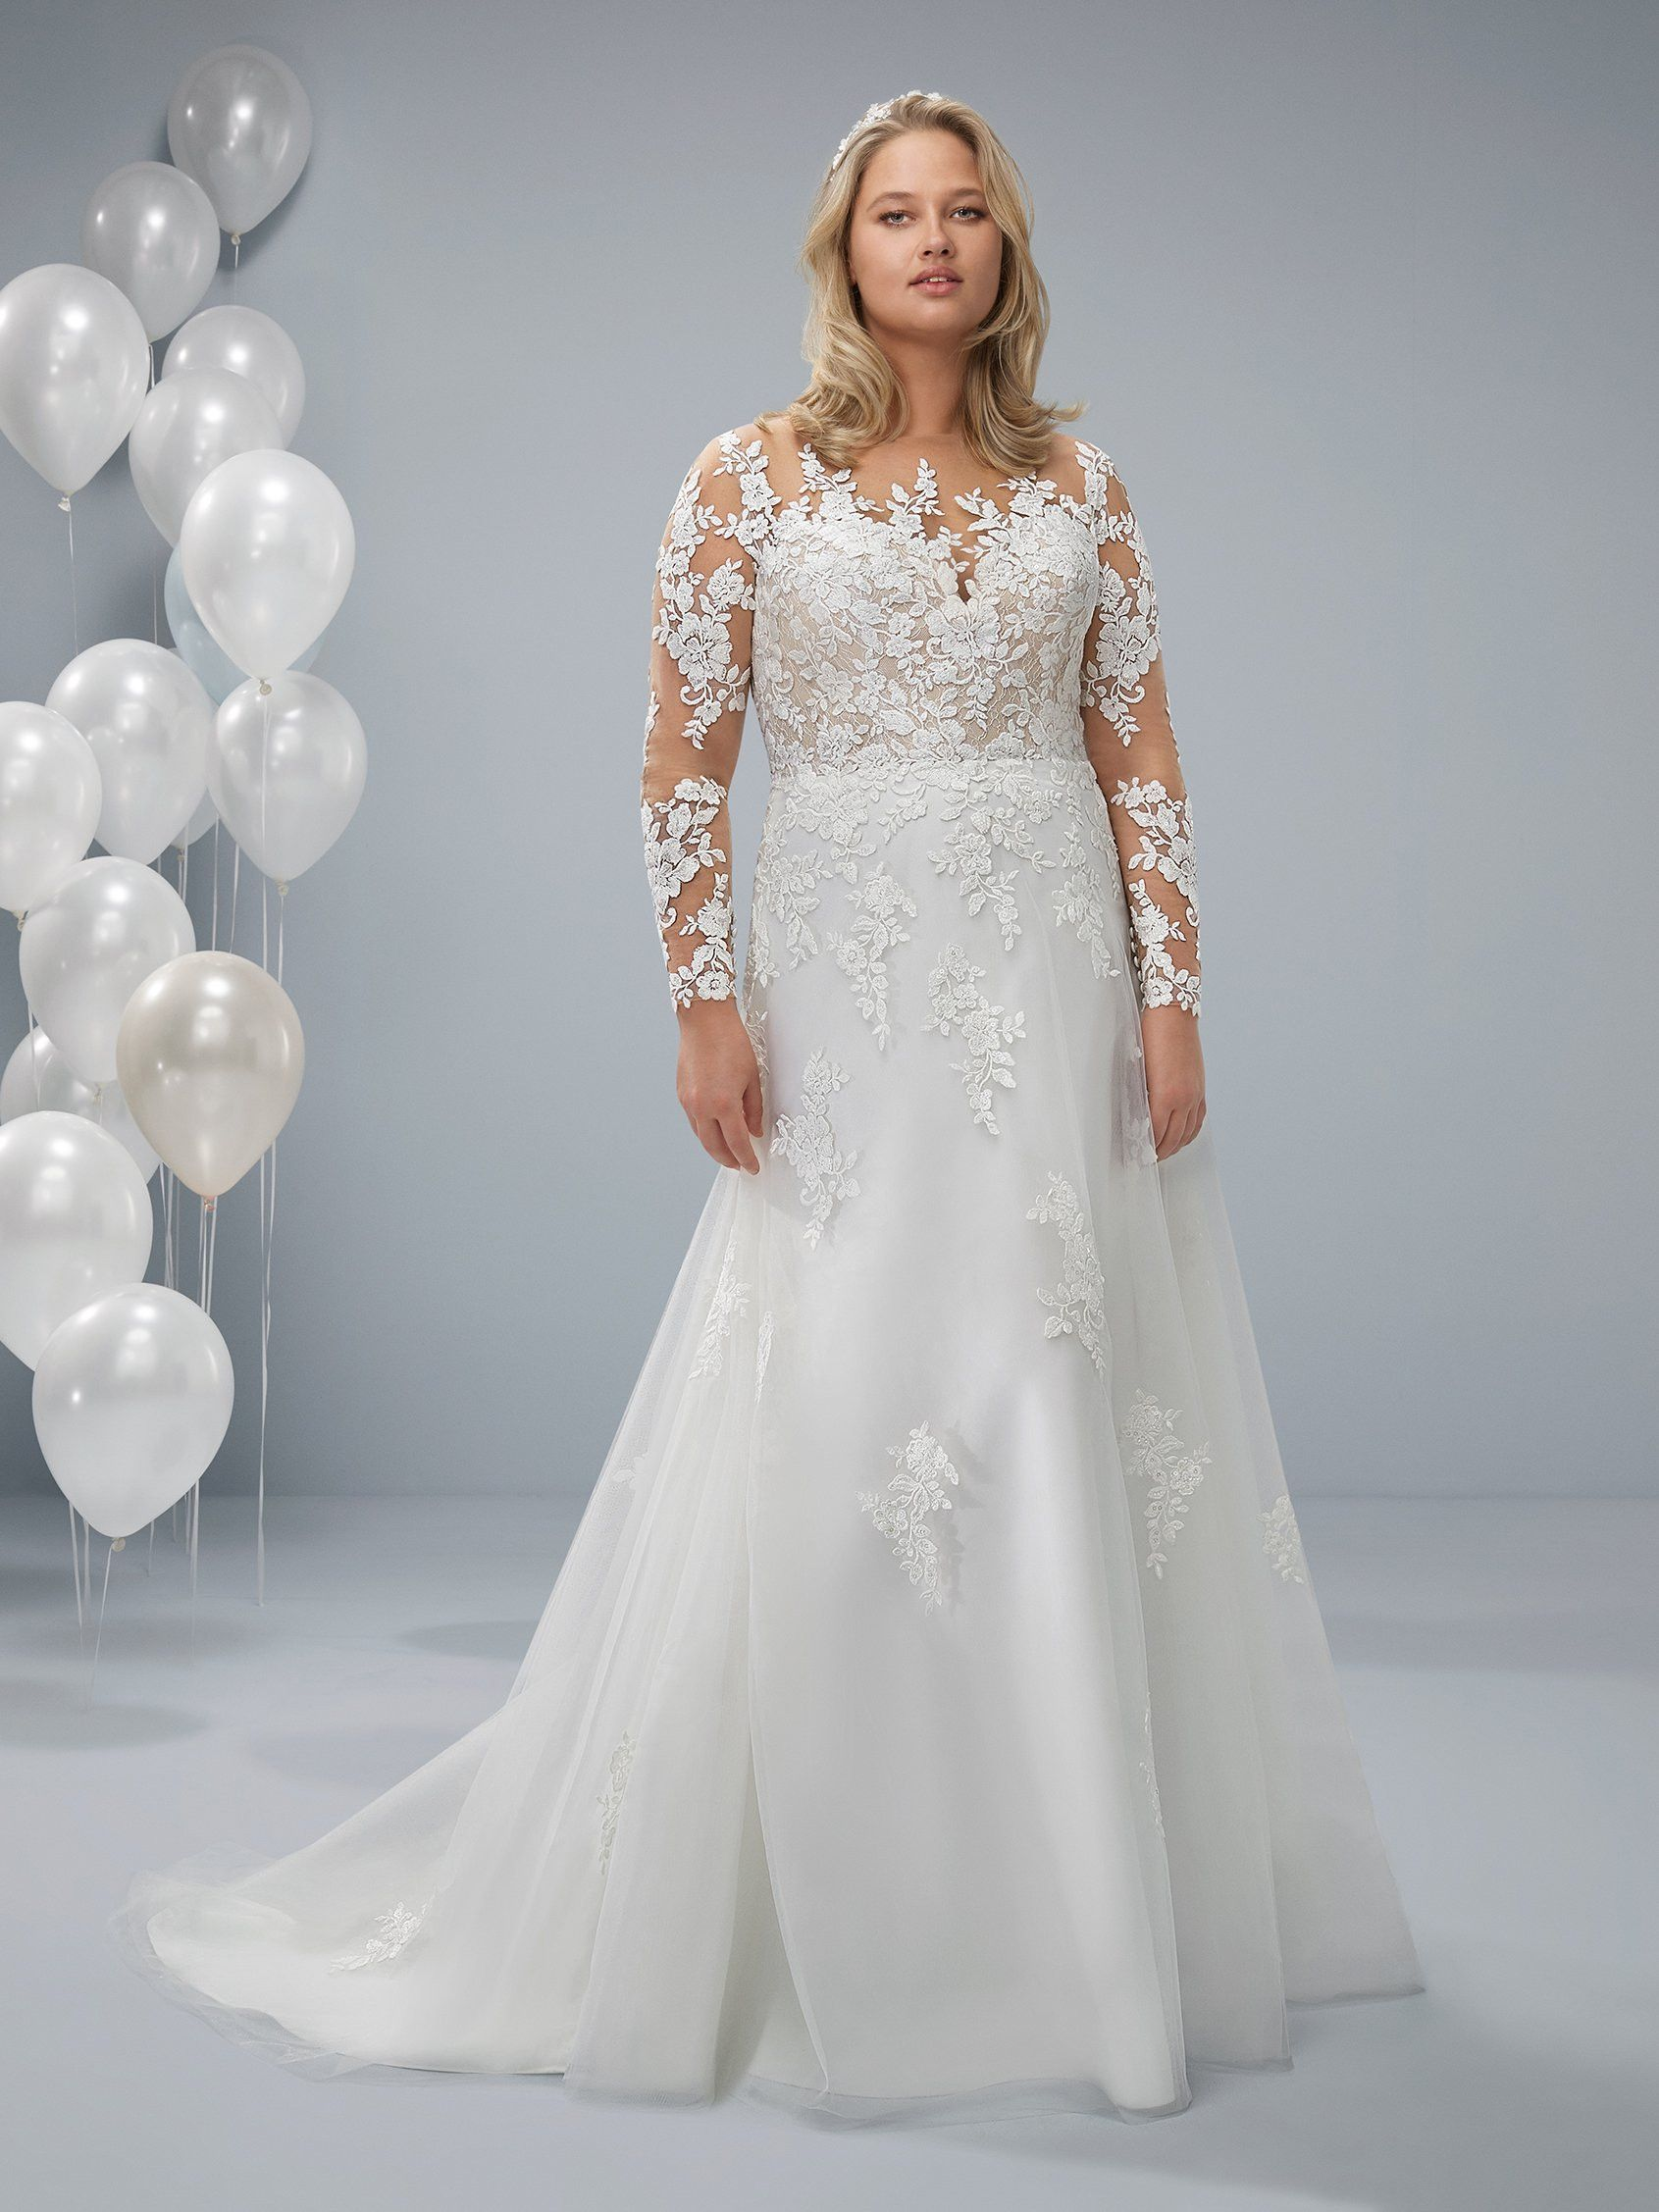 Odre Plus Wedding Dress With Long Sleeves And Illusion Neckline Plus Wedding Dresses Wedding Dress Big Bust Wedding Dresses